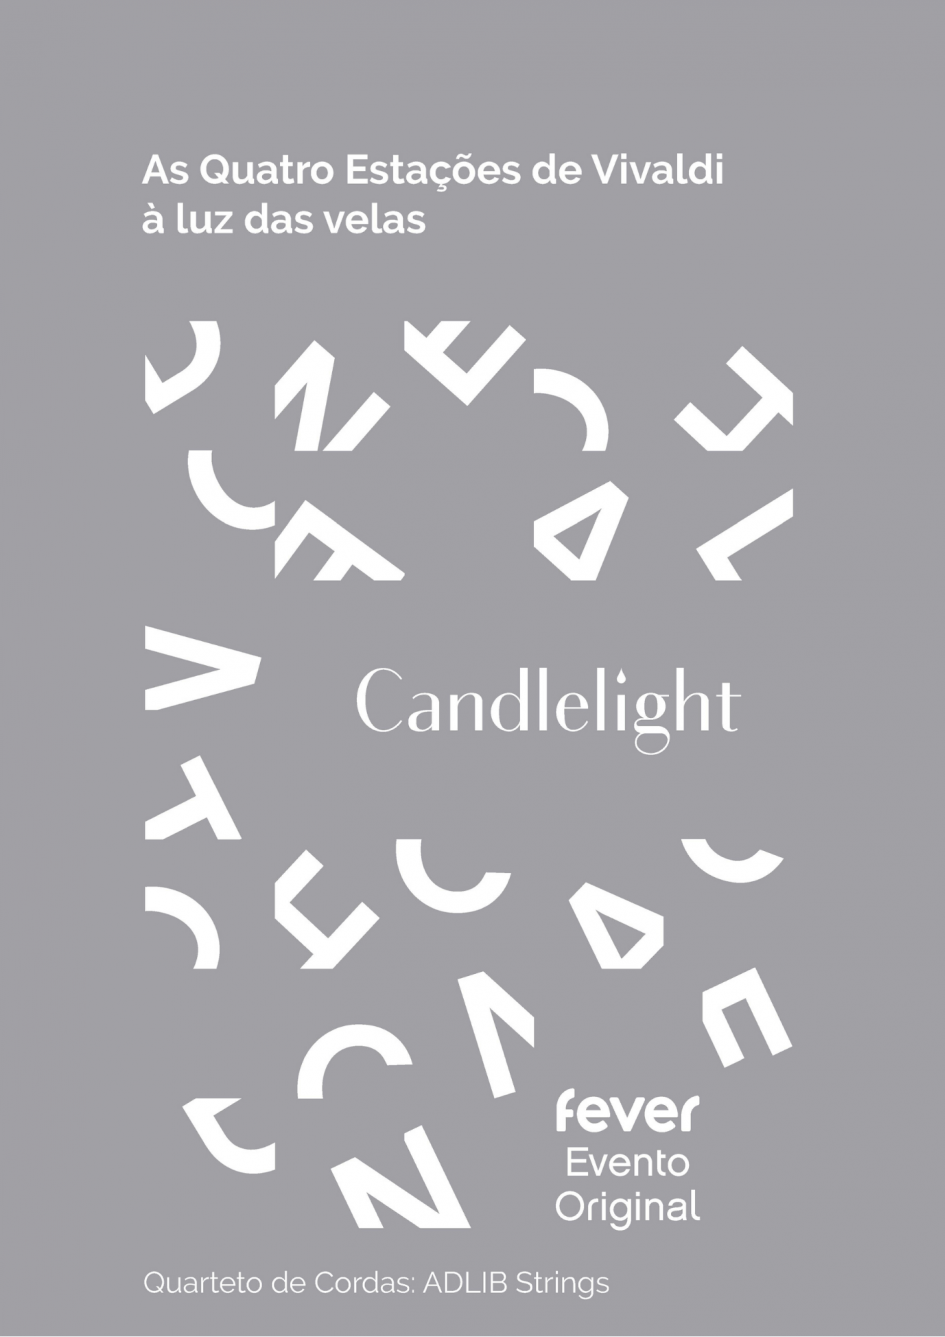 Evento Candlelight